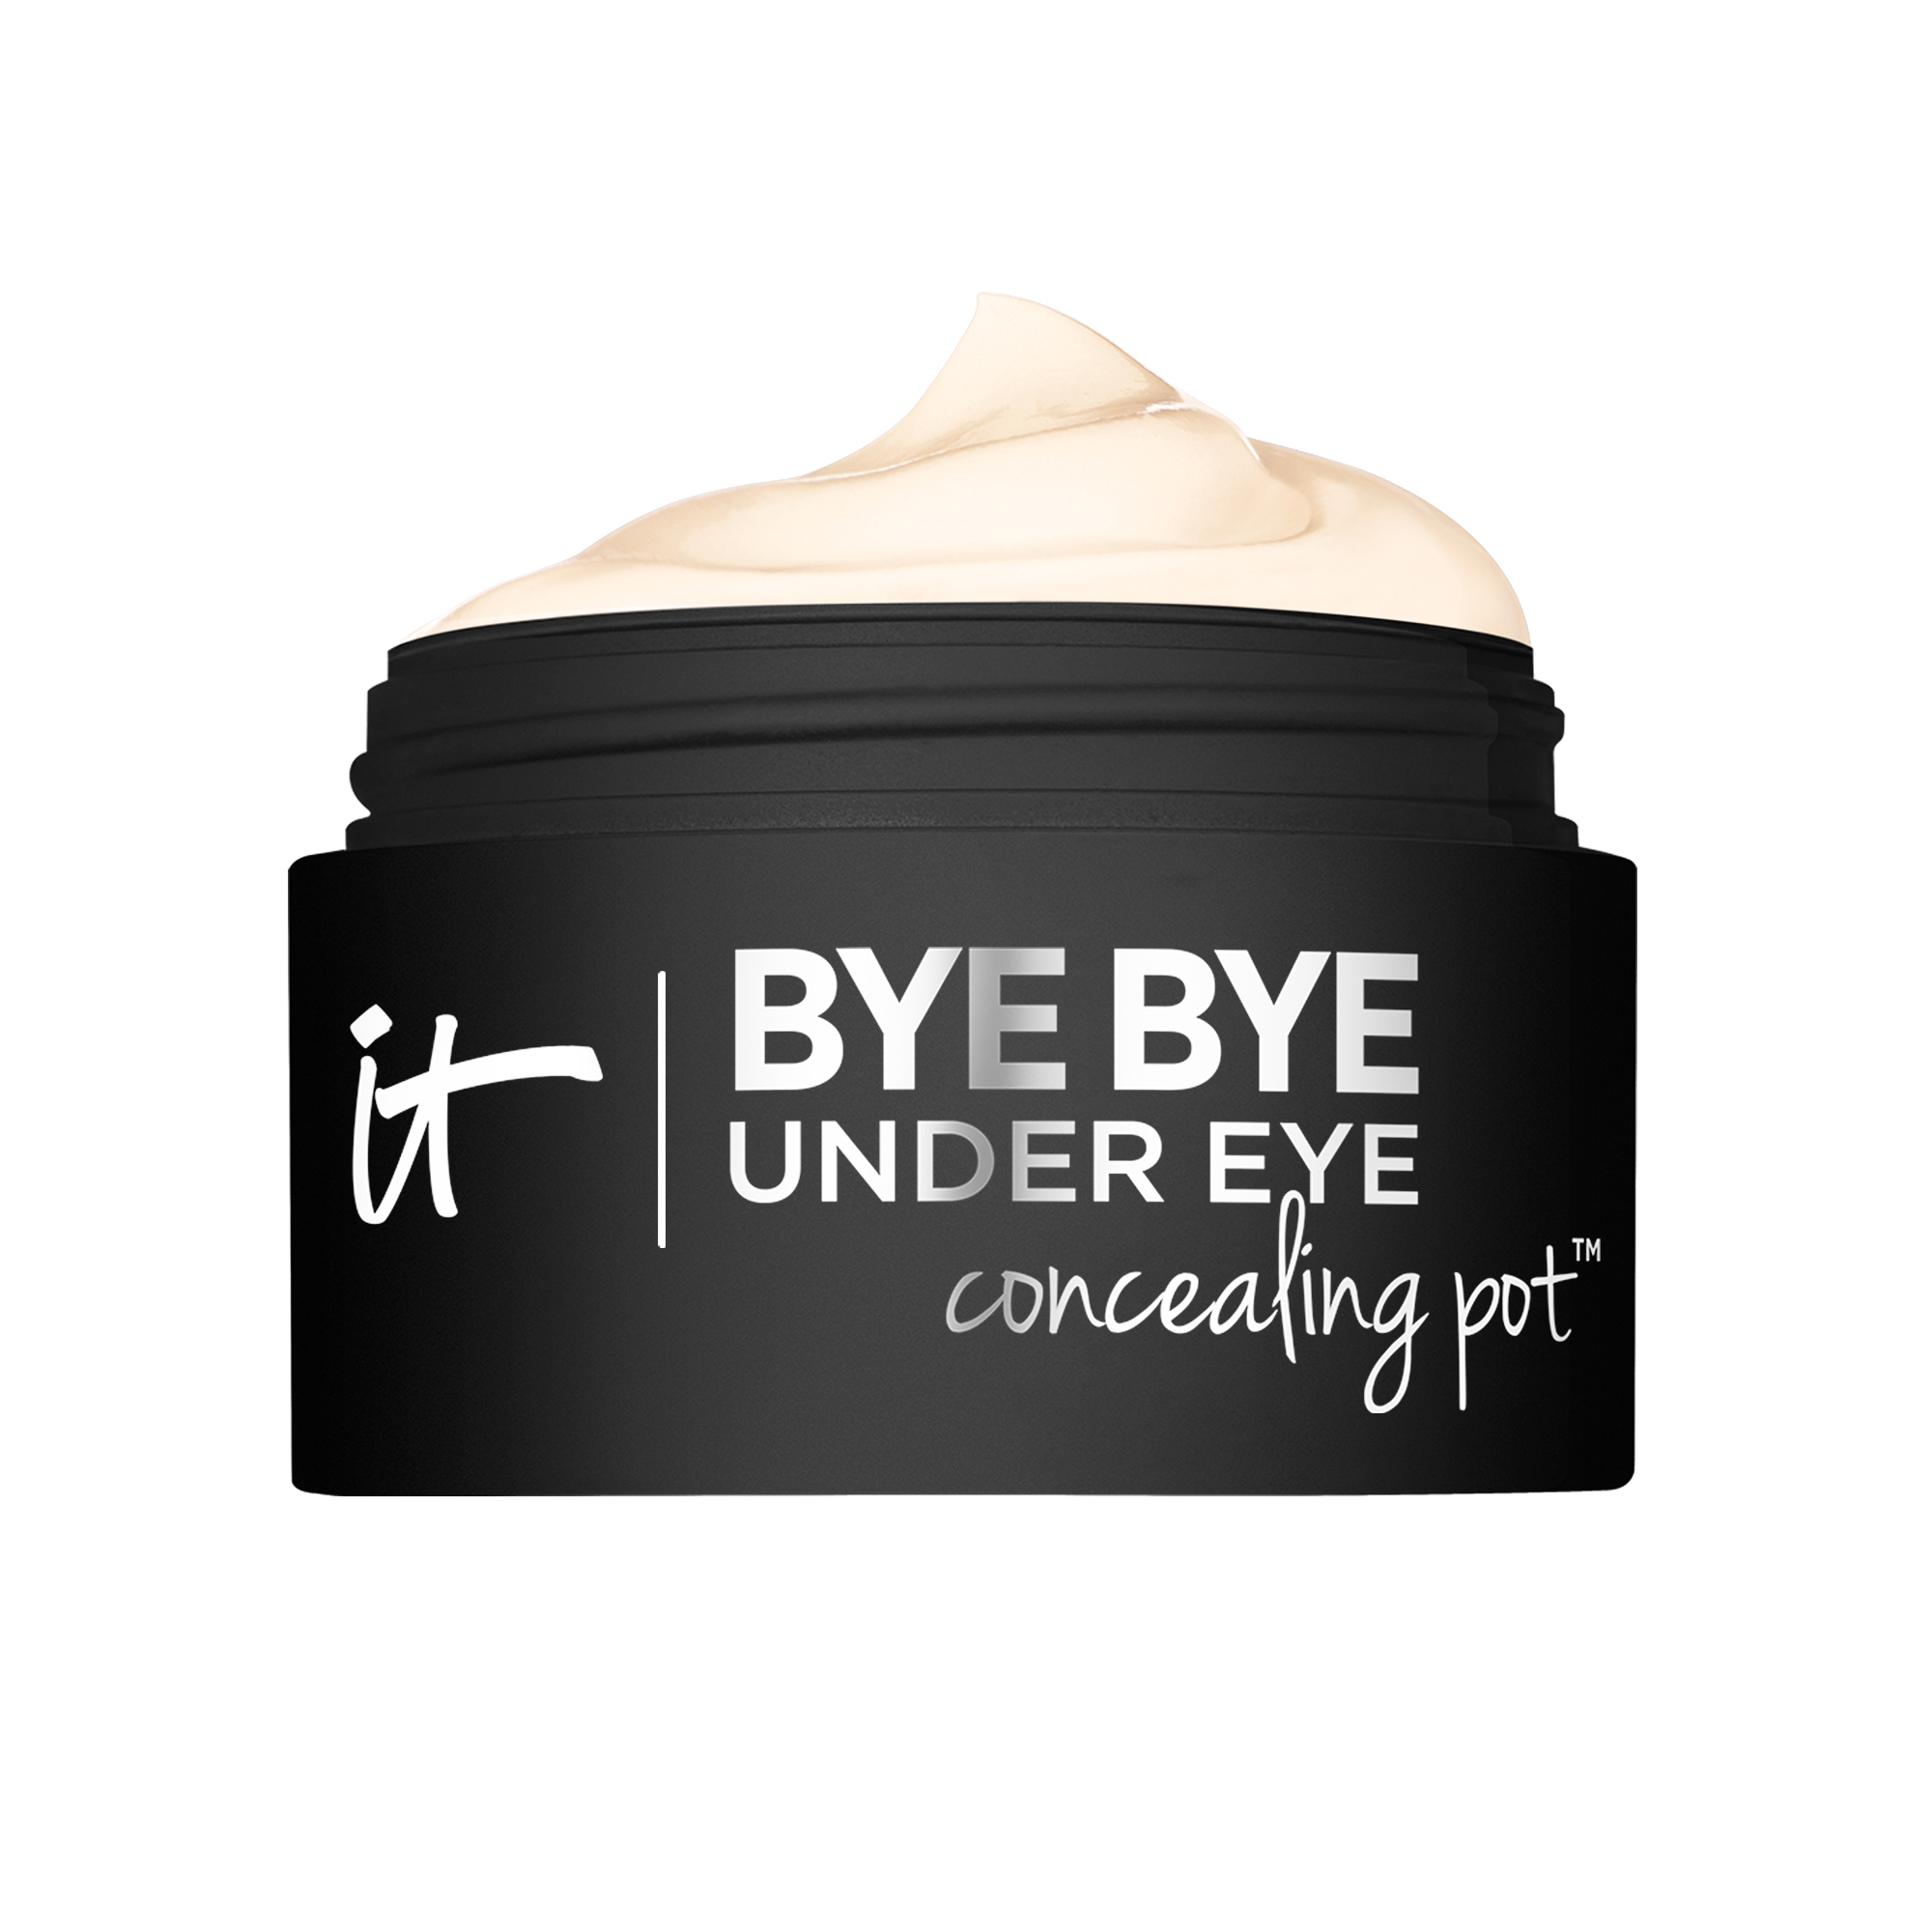 Bye Bye Under Eye™ Concealing Pot